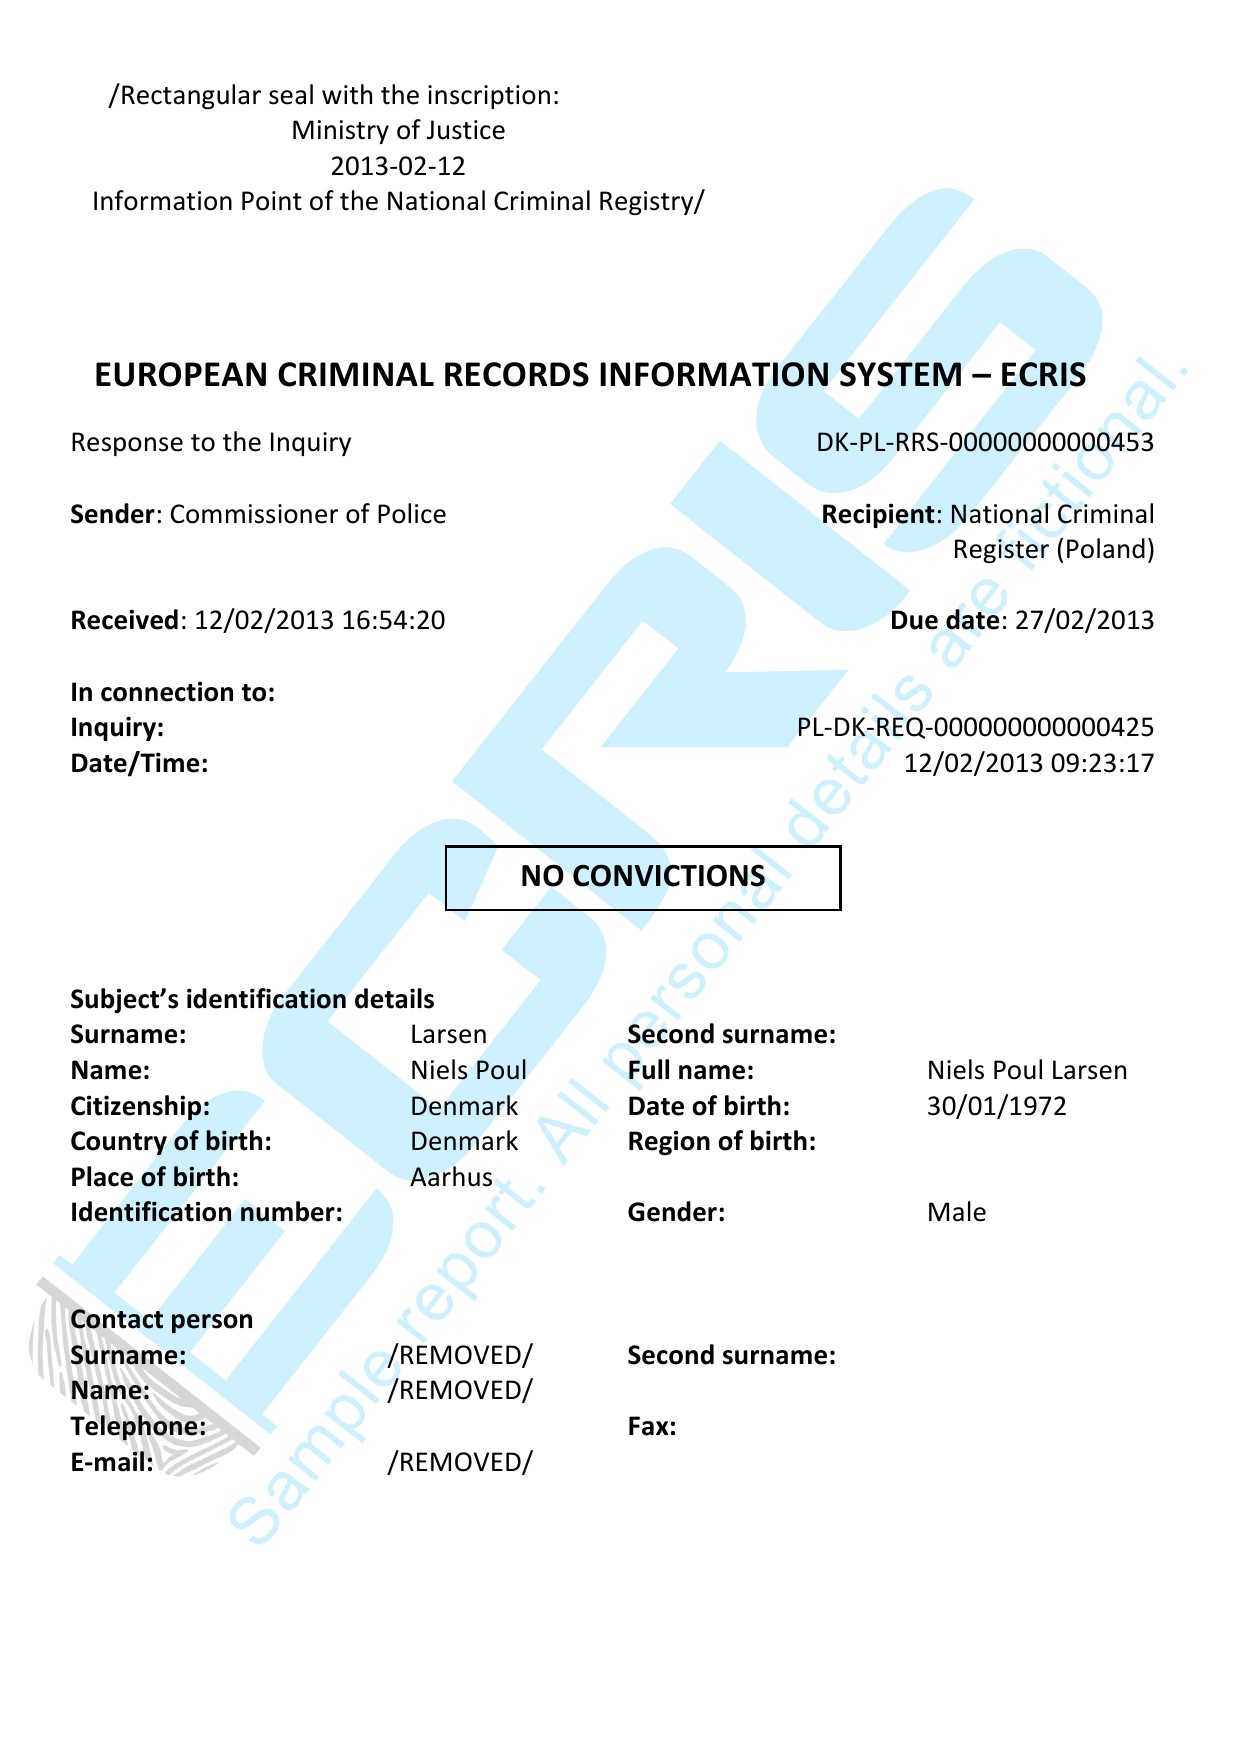 danish criminal record check from central criminal records